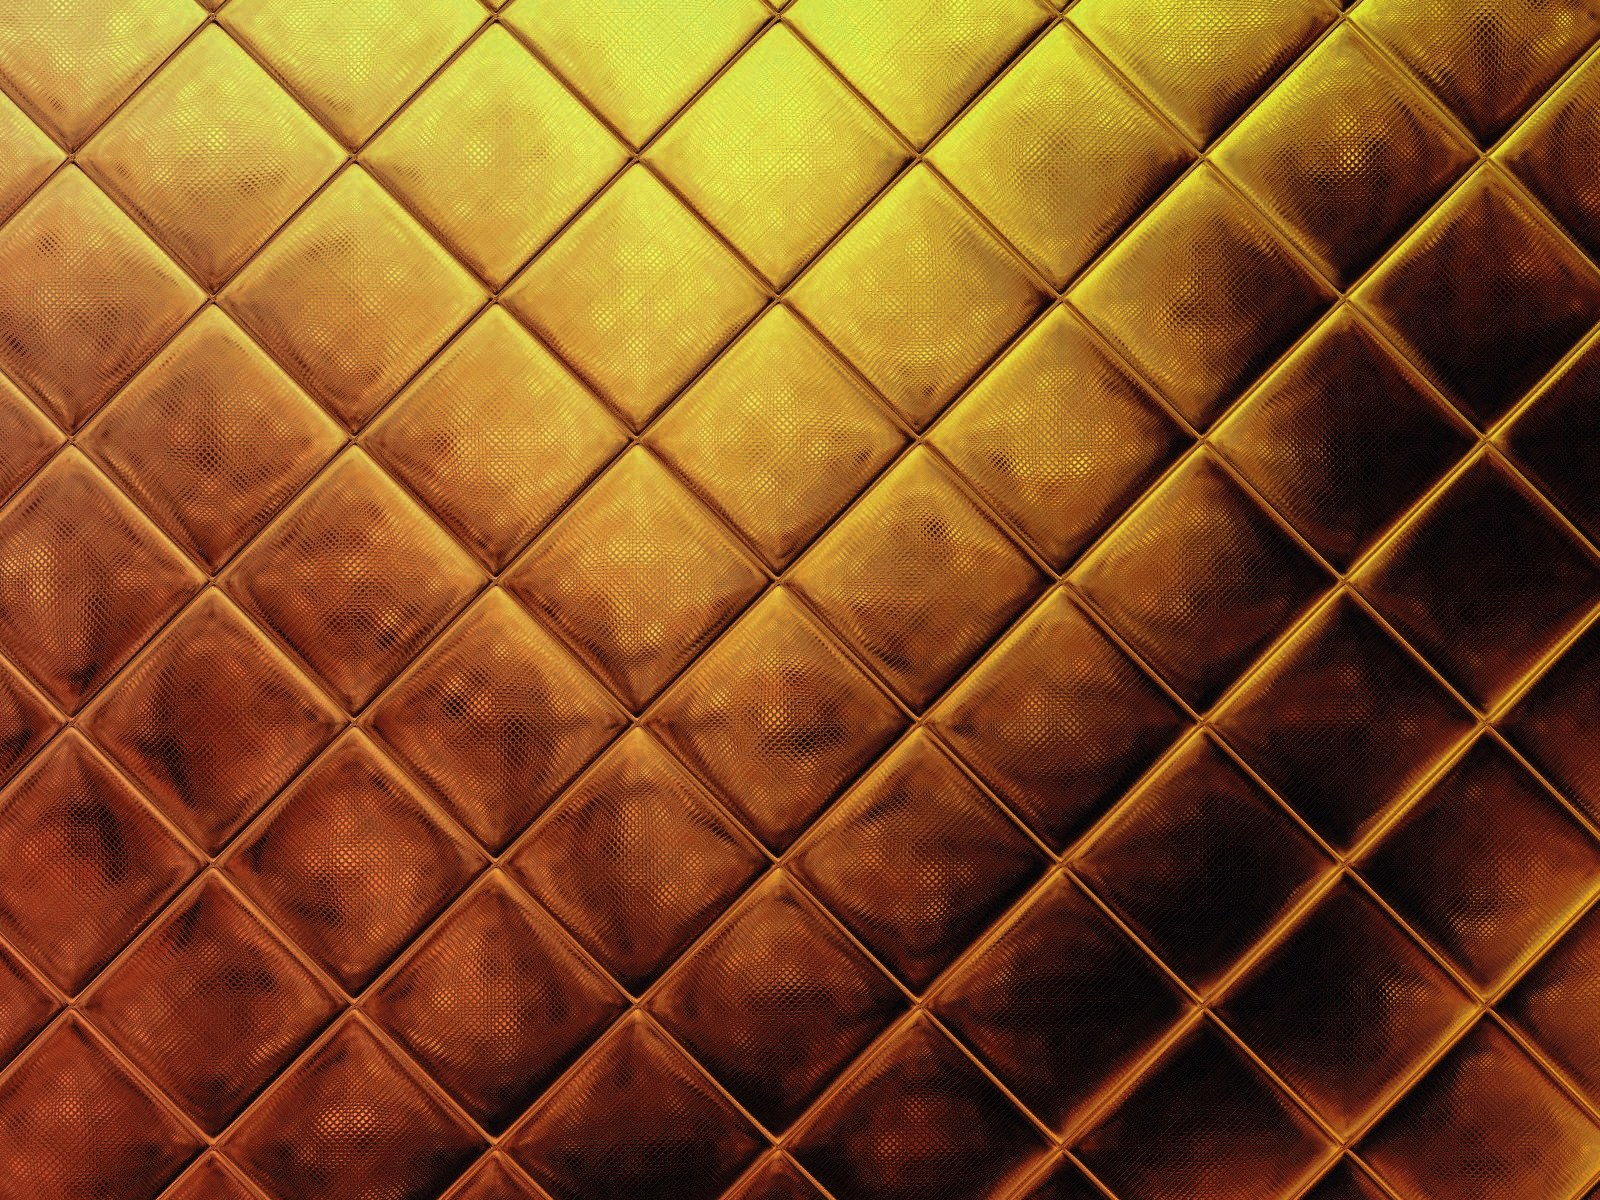 ... Gold wallpaper 11 ...